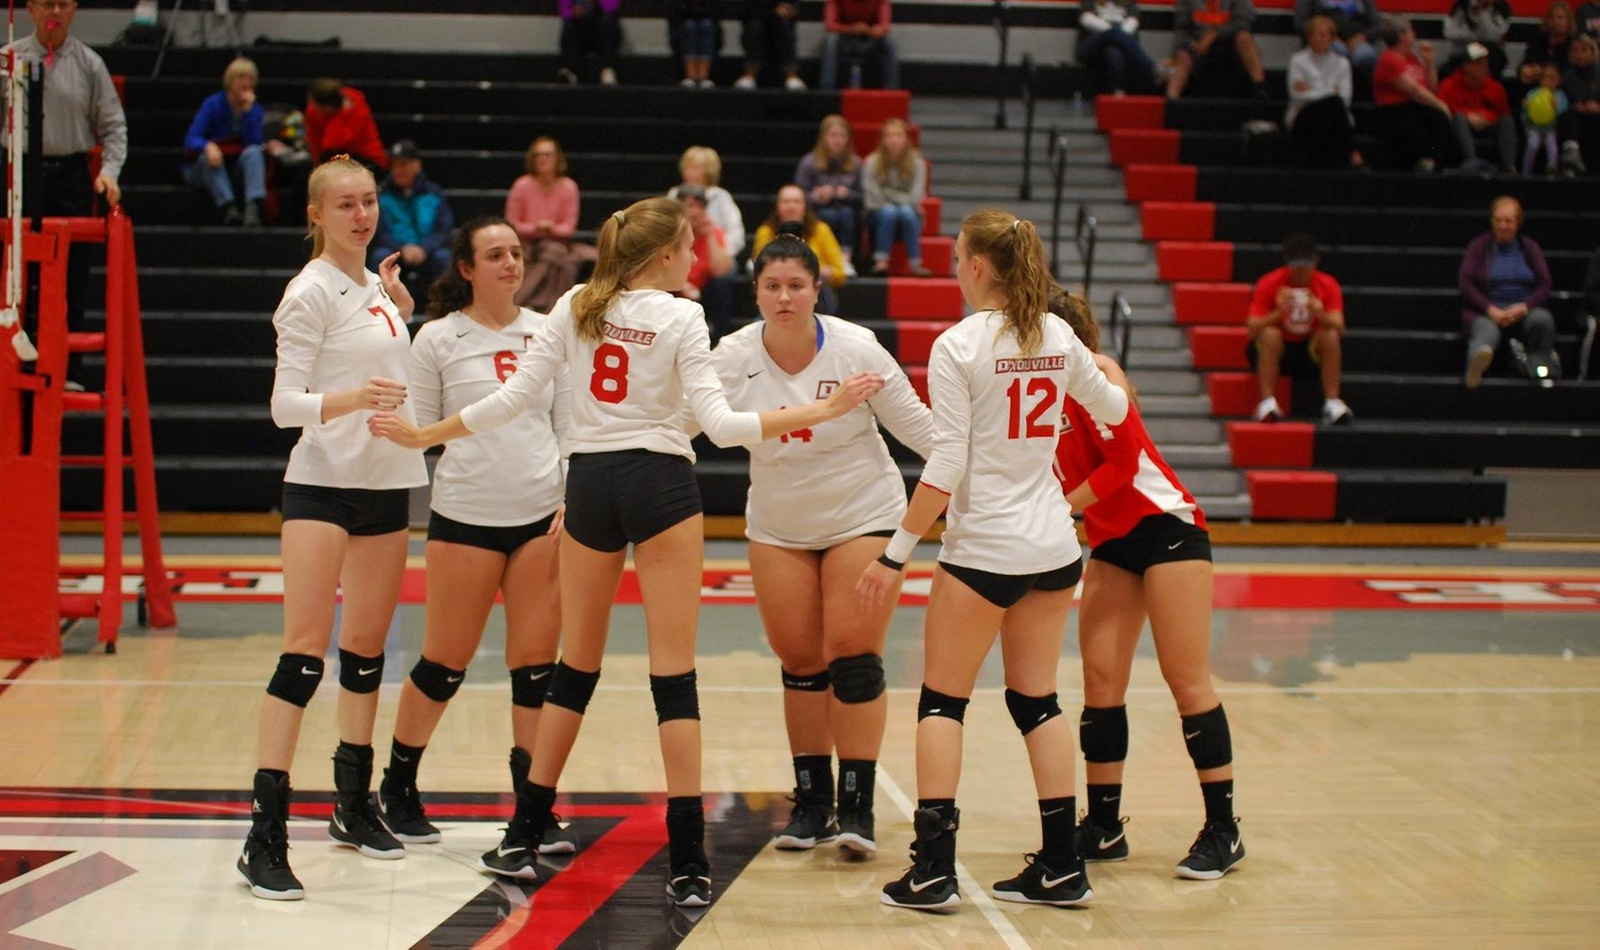 Spartan Volleyball Wins Opens Conference Schedule with Win over Hawks